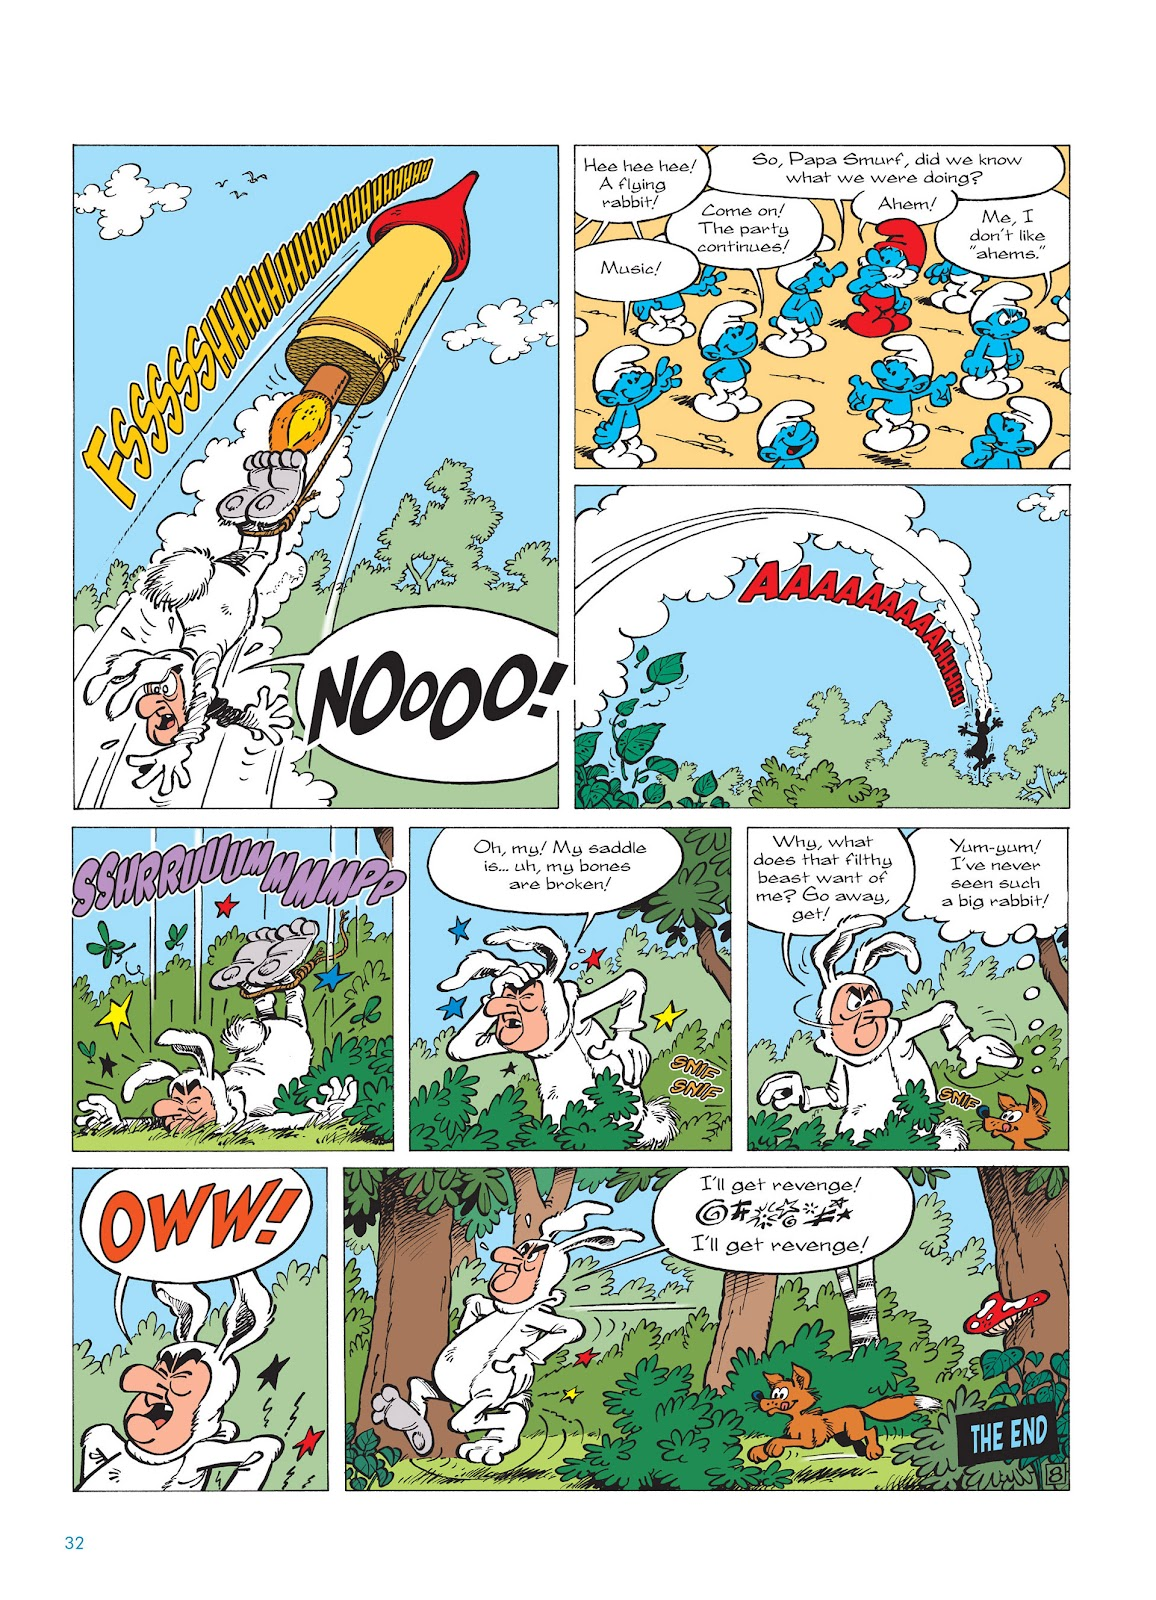 Read online The Smurfs comic -  Issue #14 - 33